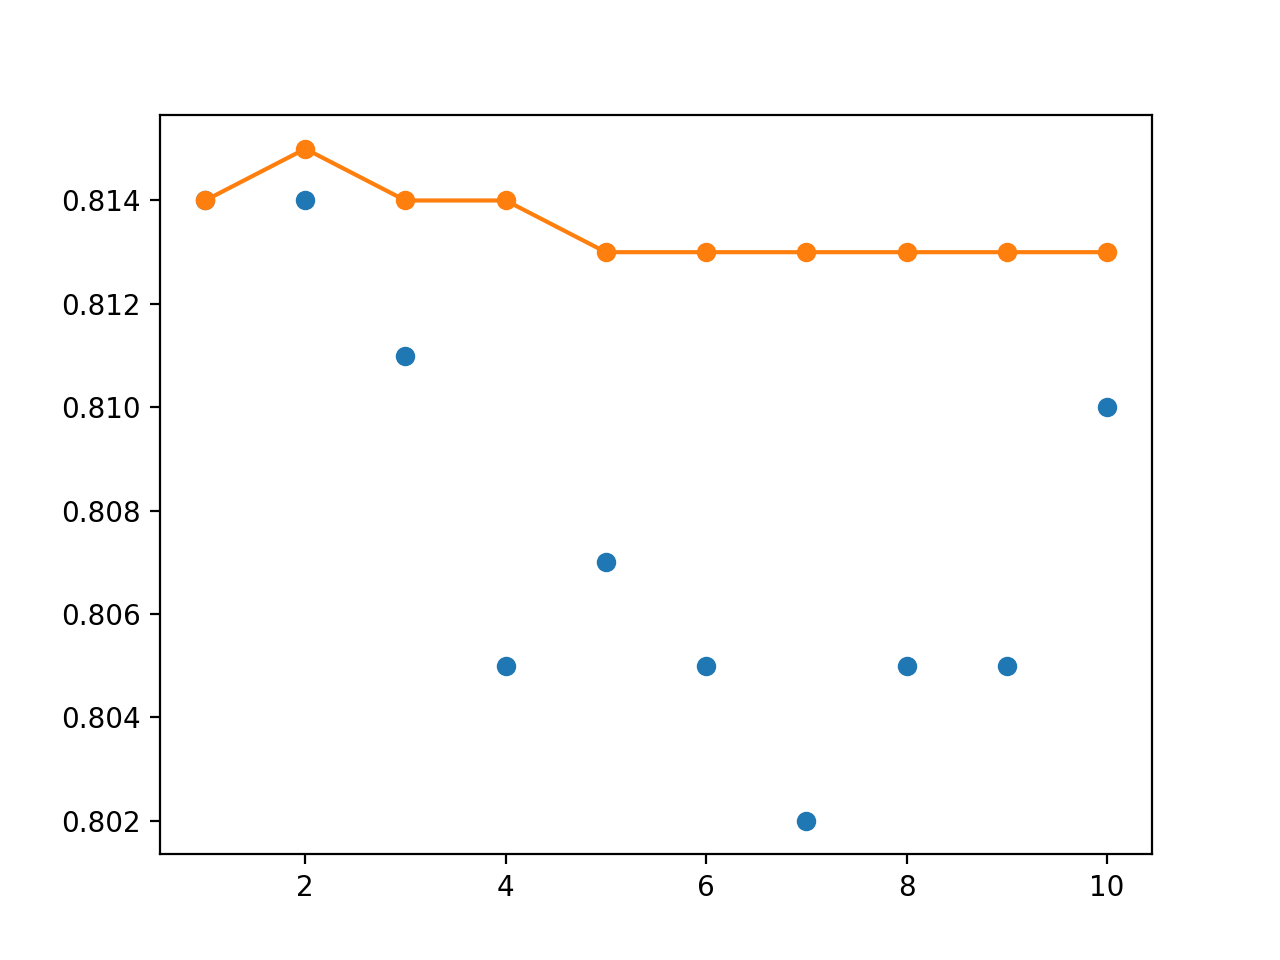 Line Plot of Single Model Test Performance (blue dots) and Model Weight Ensemble Test Performance (orange line) With an Exponential Decay